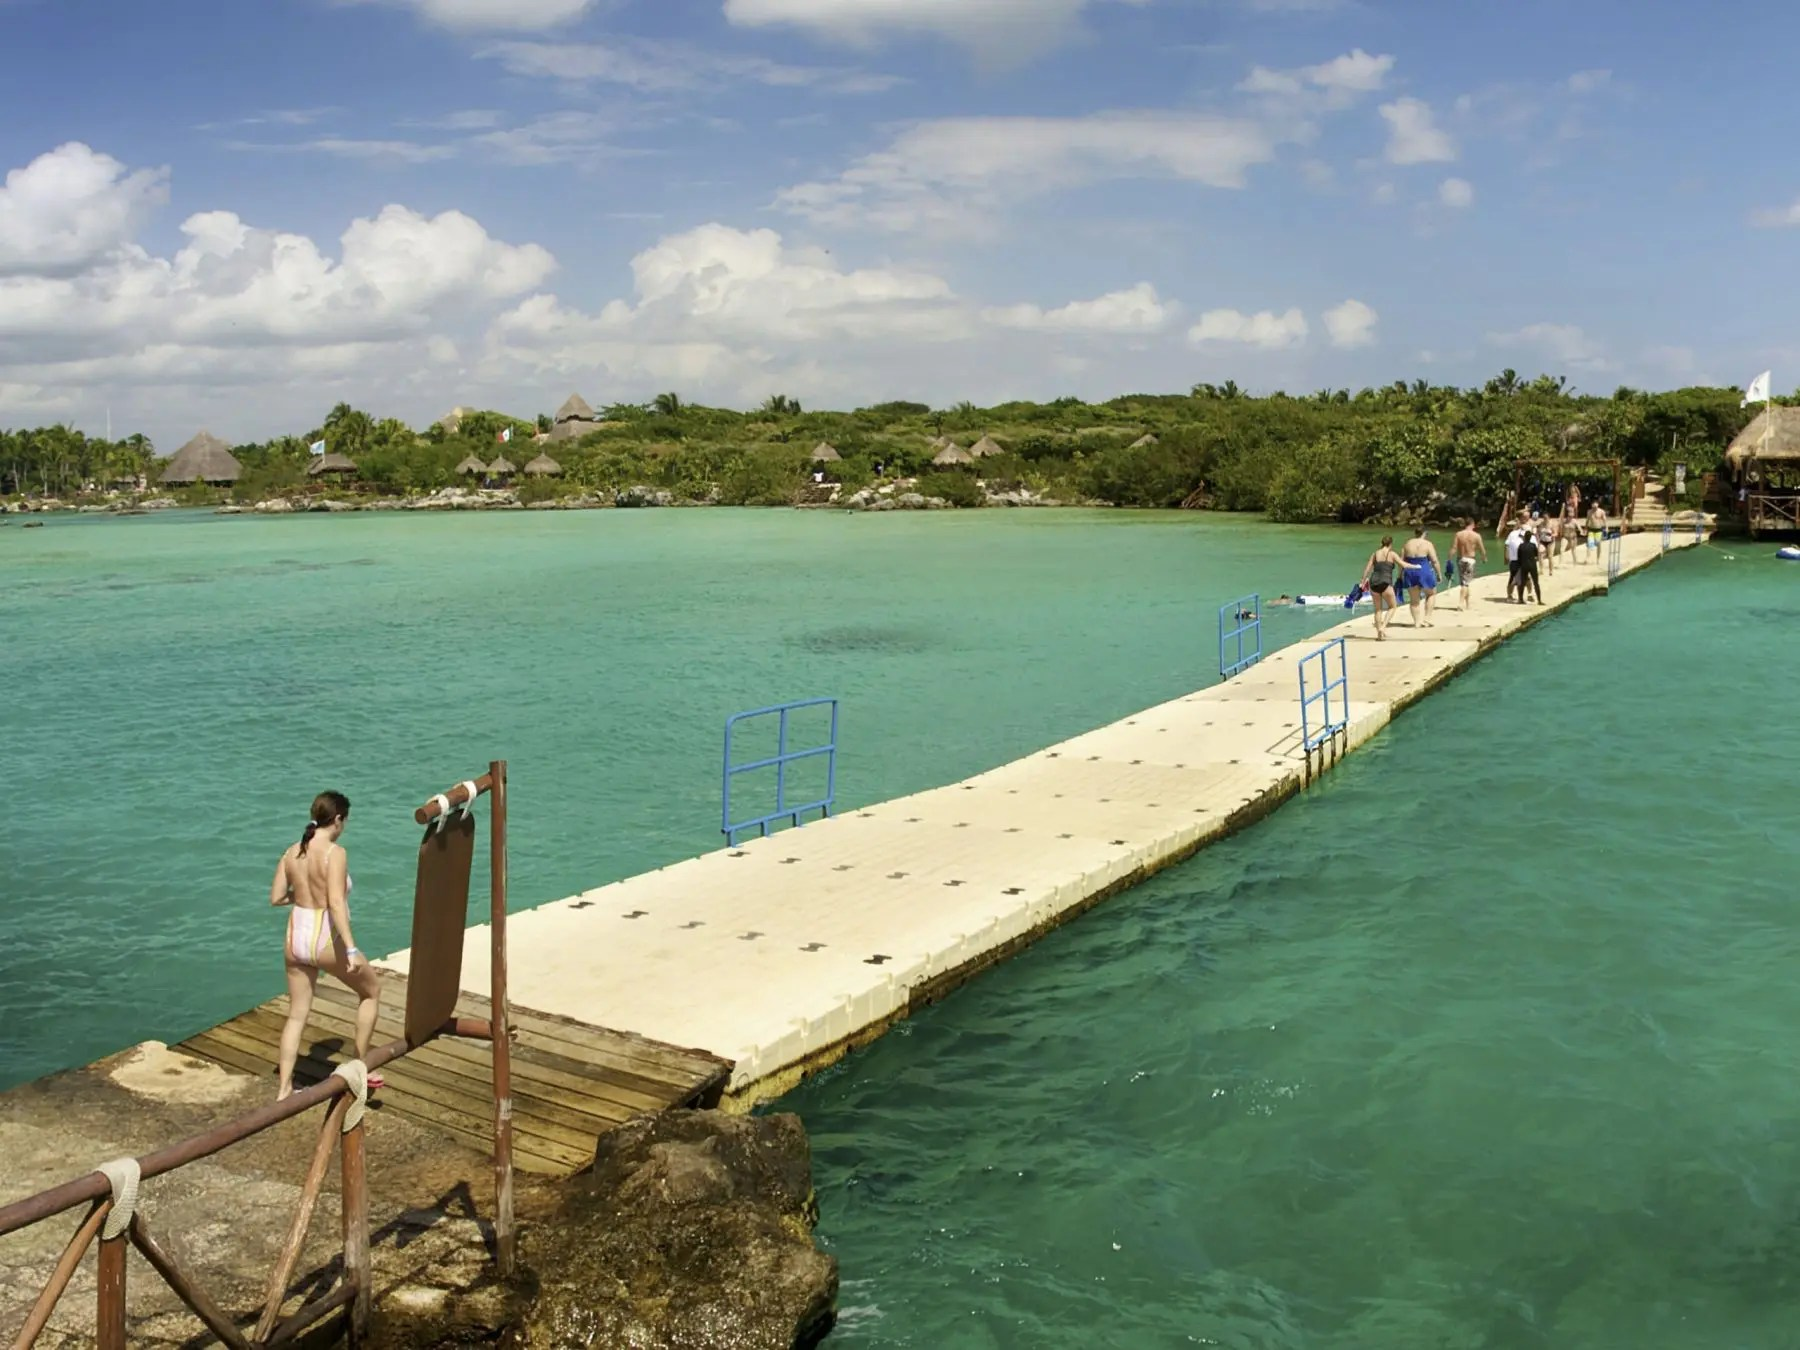 Xel-Ha Tour: Your Complete Guide to Attractions & Prices